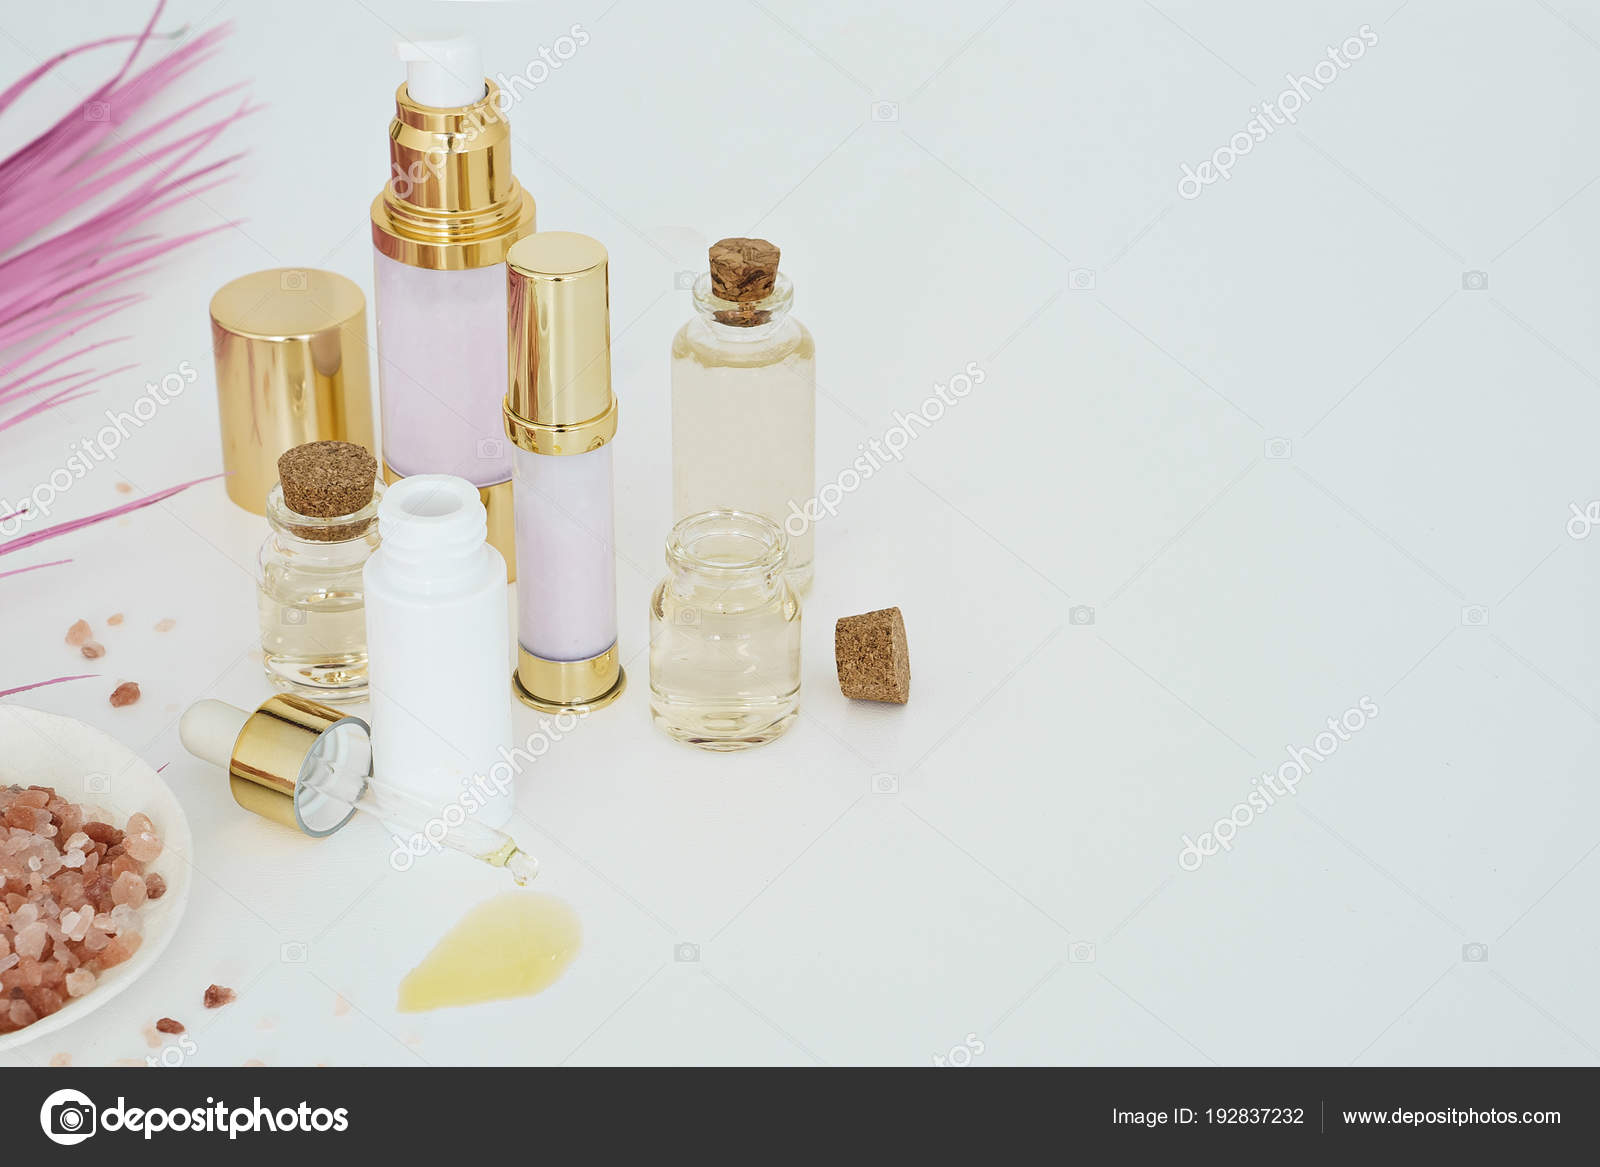 Beauty Skincare Products Pink Palm Leaf White Background Stock Photo C Christina Pauchi 192837232